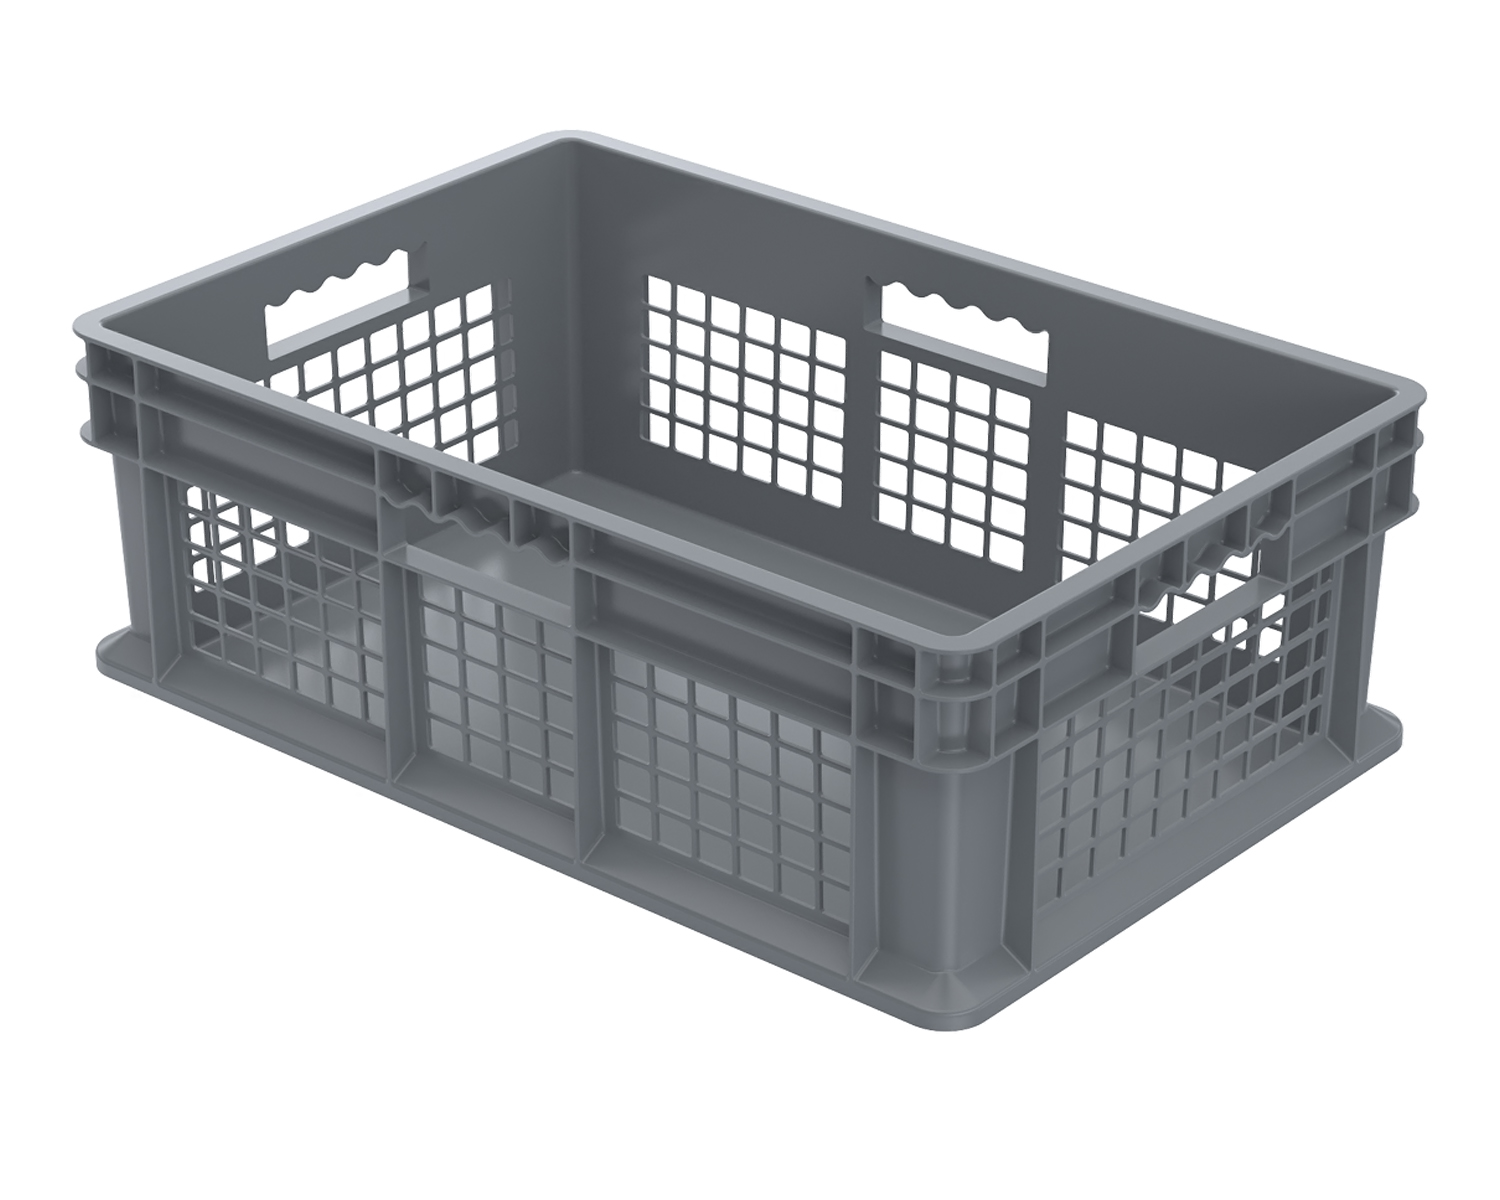 Akromills Storage Organizer Straight Wall Container System Mesh  Side/Solid Bott 4 Pack - 23.75X 15.75X 8.25 at Sears.com